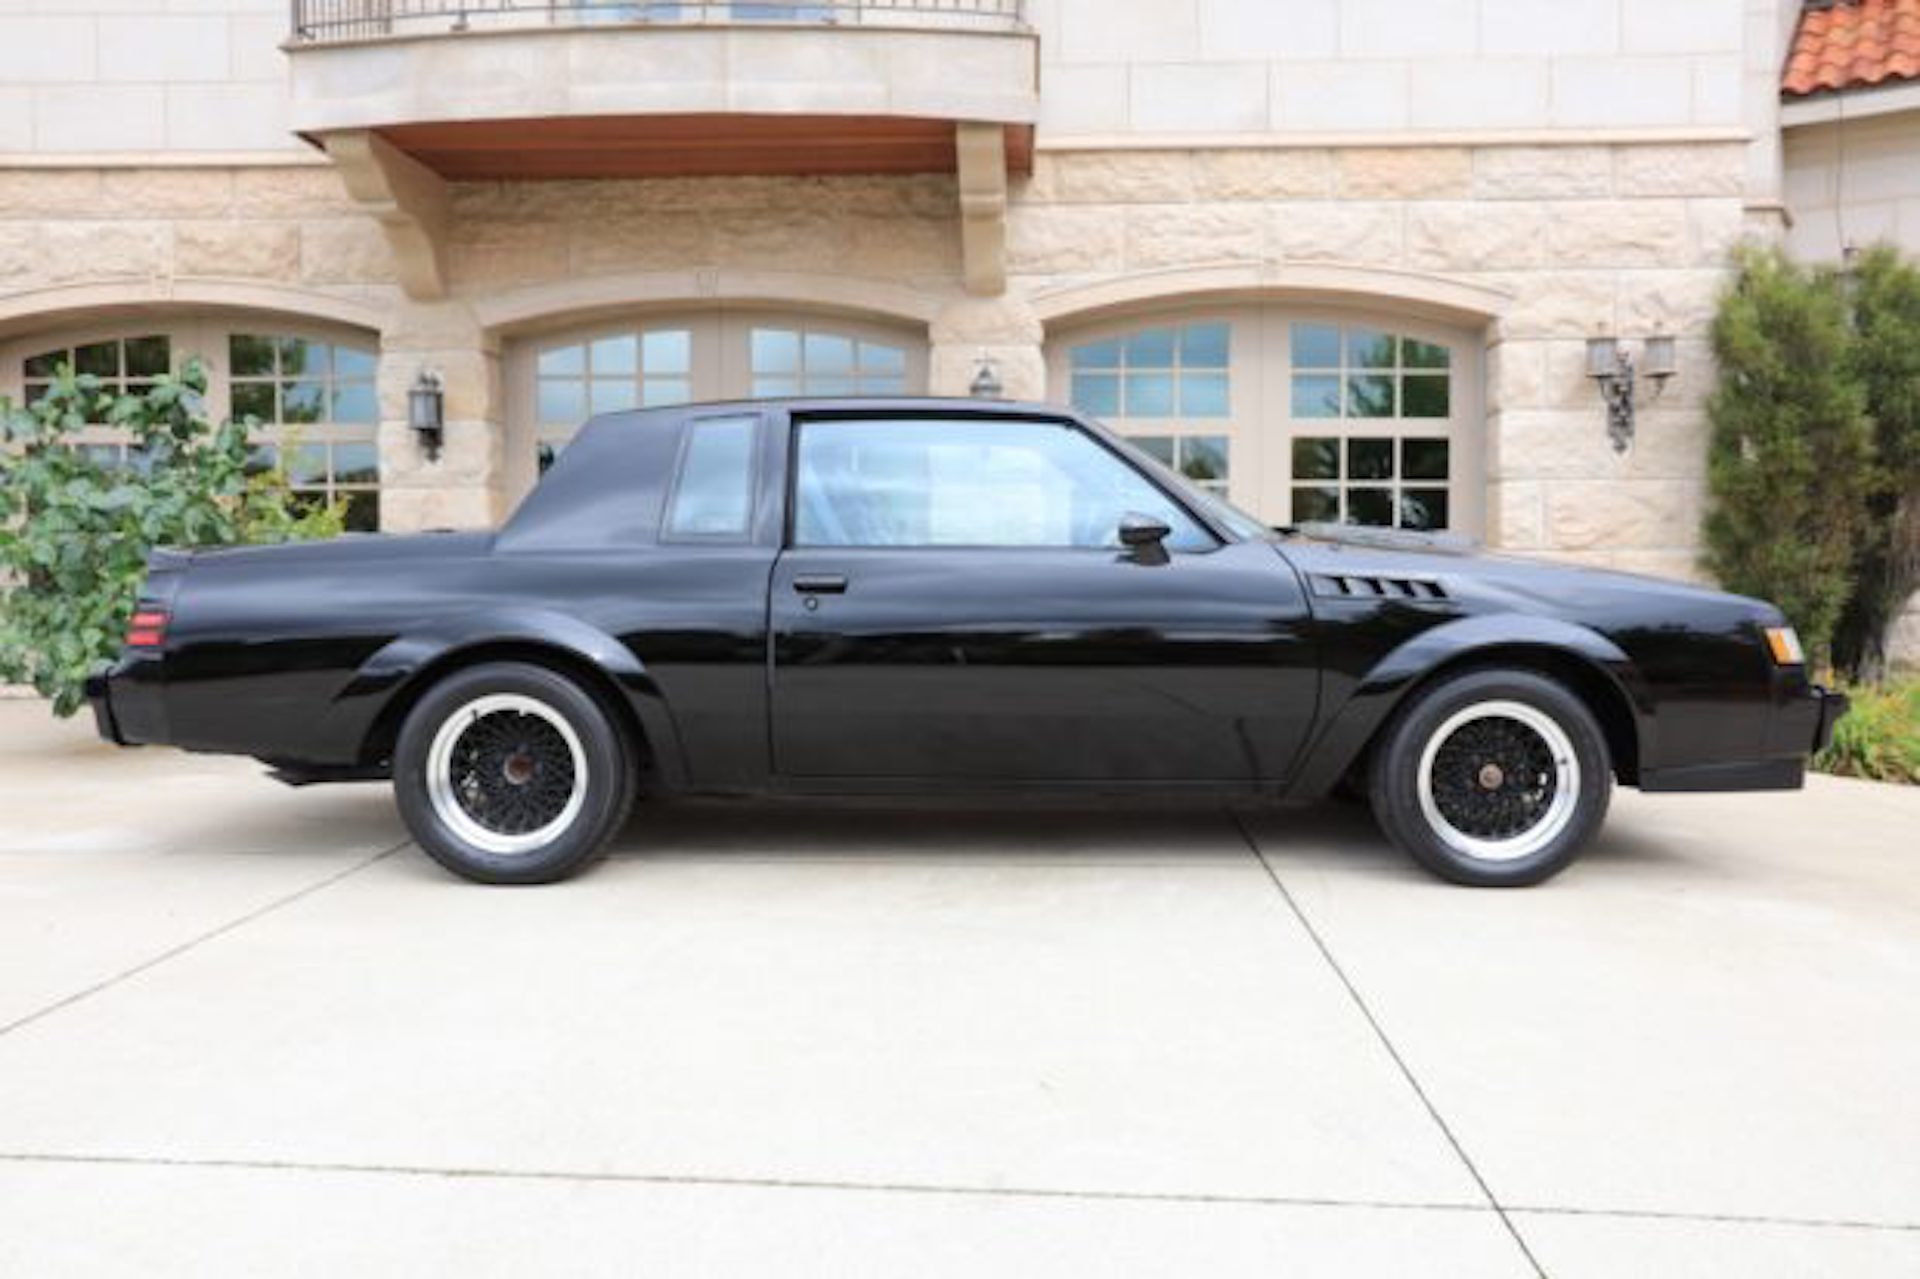 1987 Buick Gnx Driven Only 8 Miles Its Whole Life Seeks New Owner